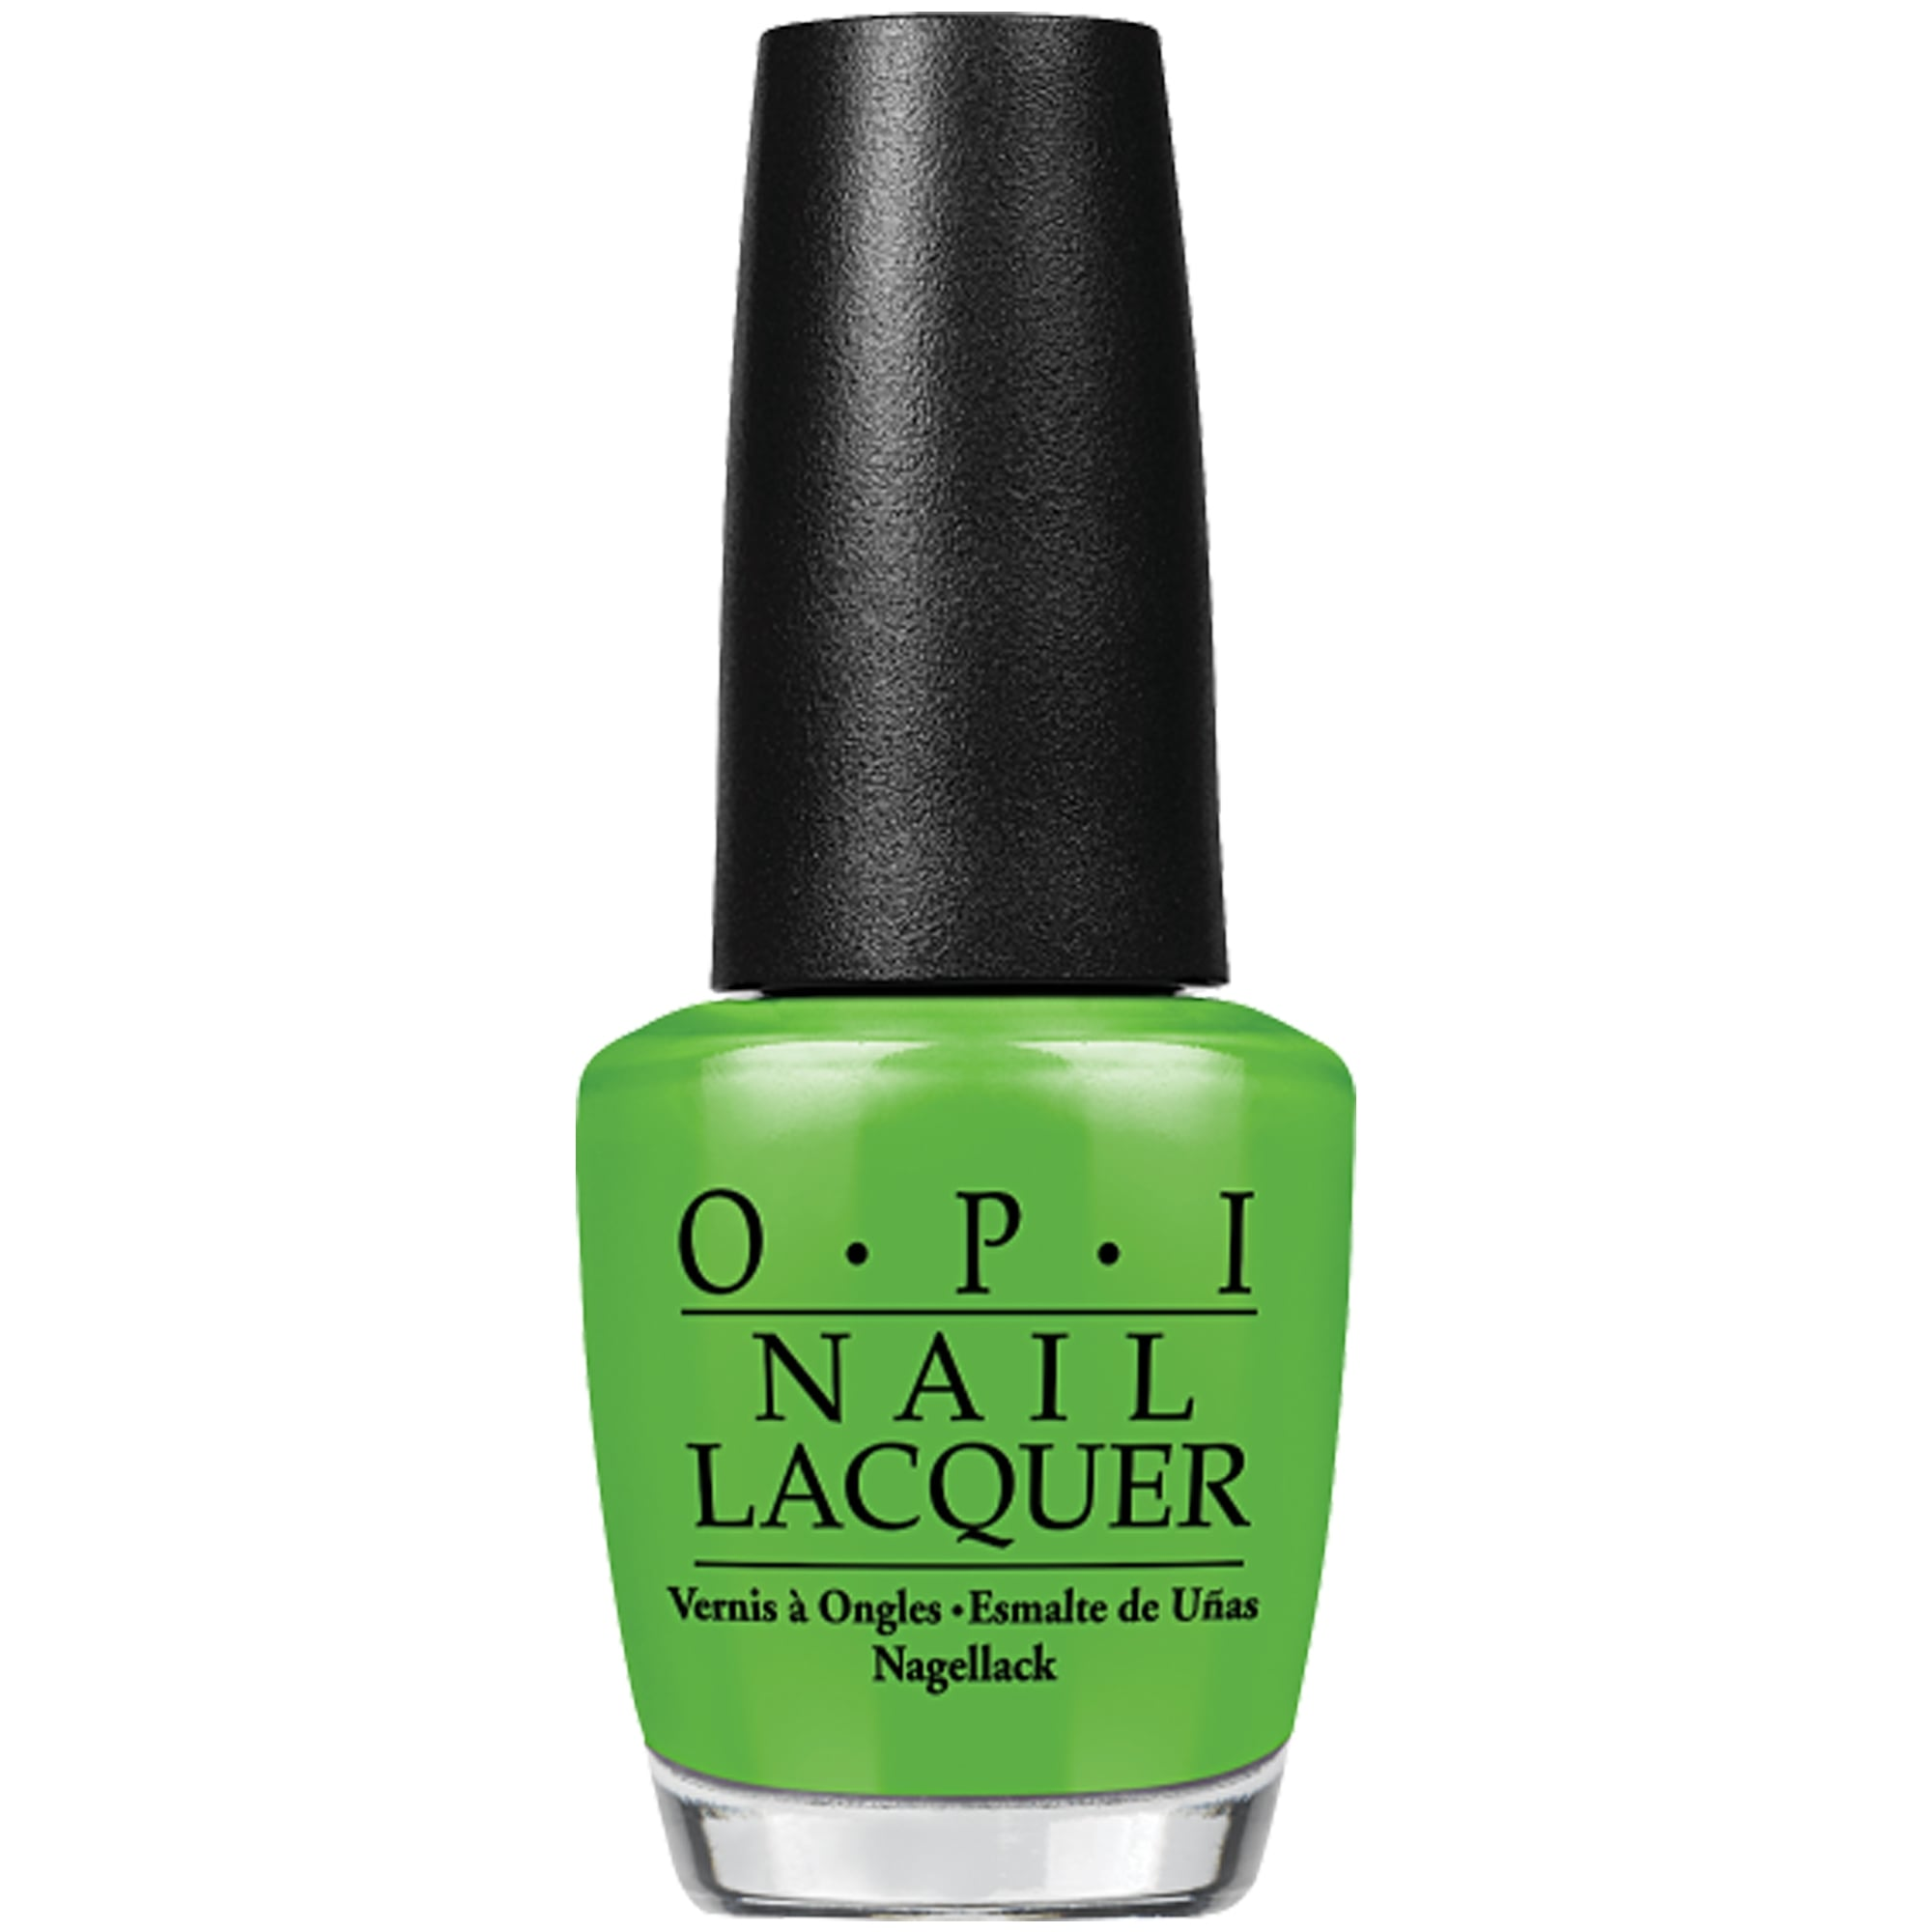 Home › Nails › Nail Polish › OPI › OPI Nail Polish - Green